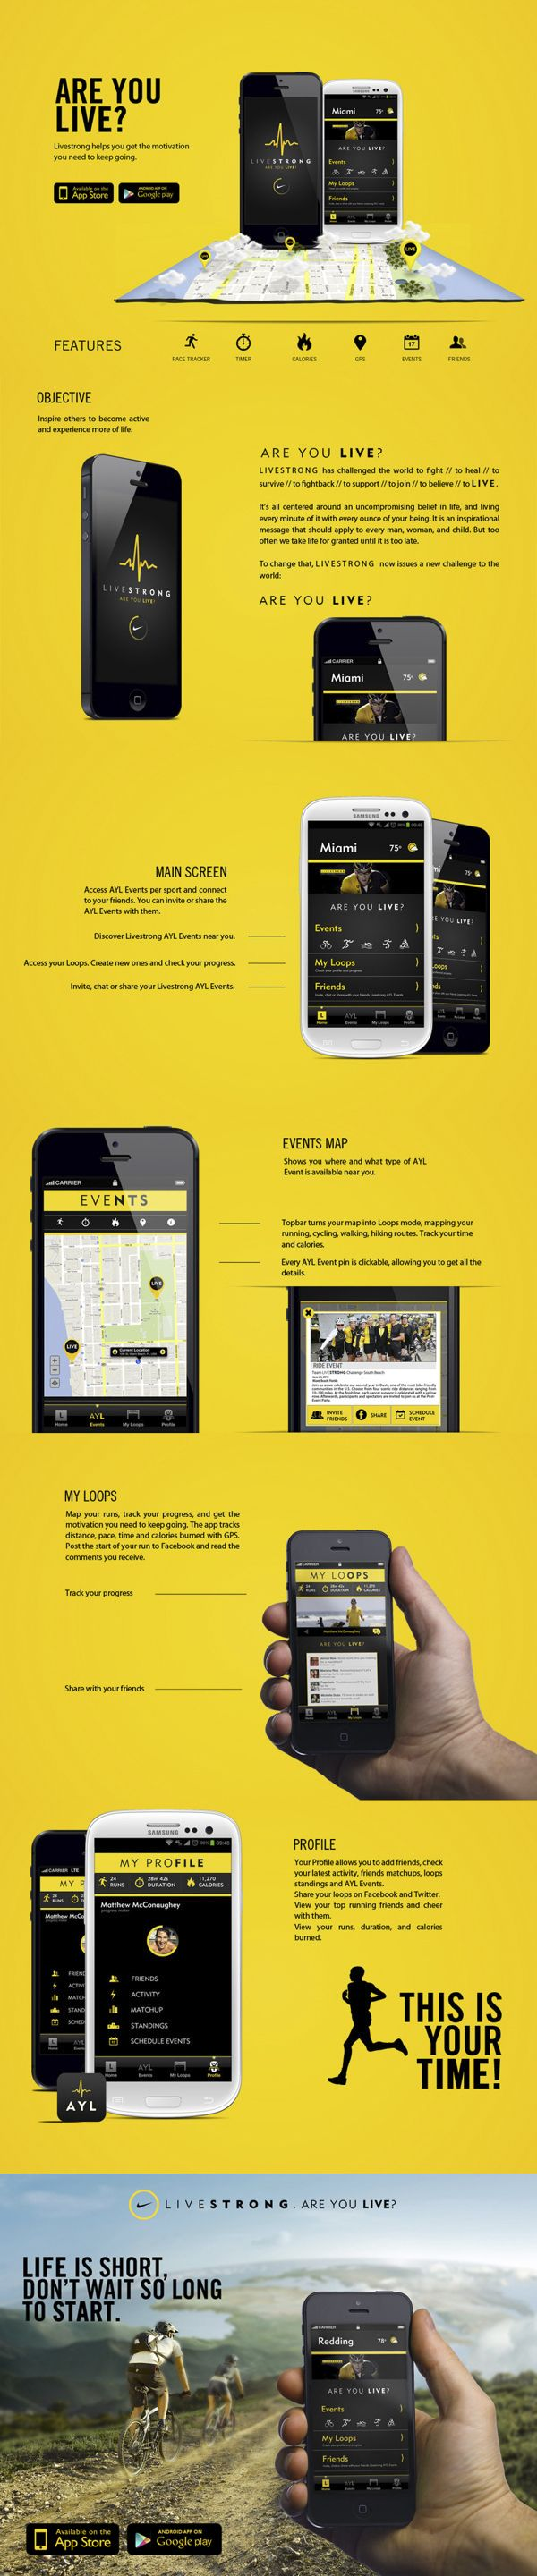 #Livestrong // Are You Live? by Andres Schiling, via #Behance #Mobile #UI #Digital